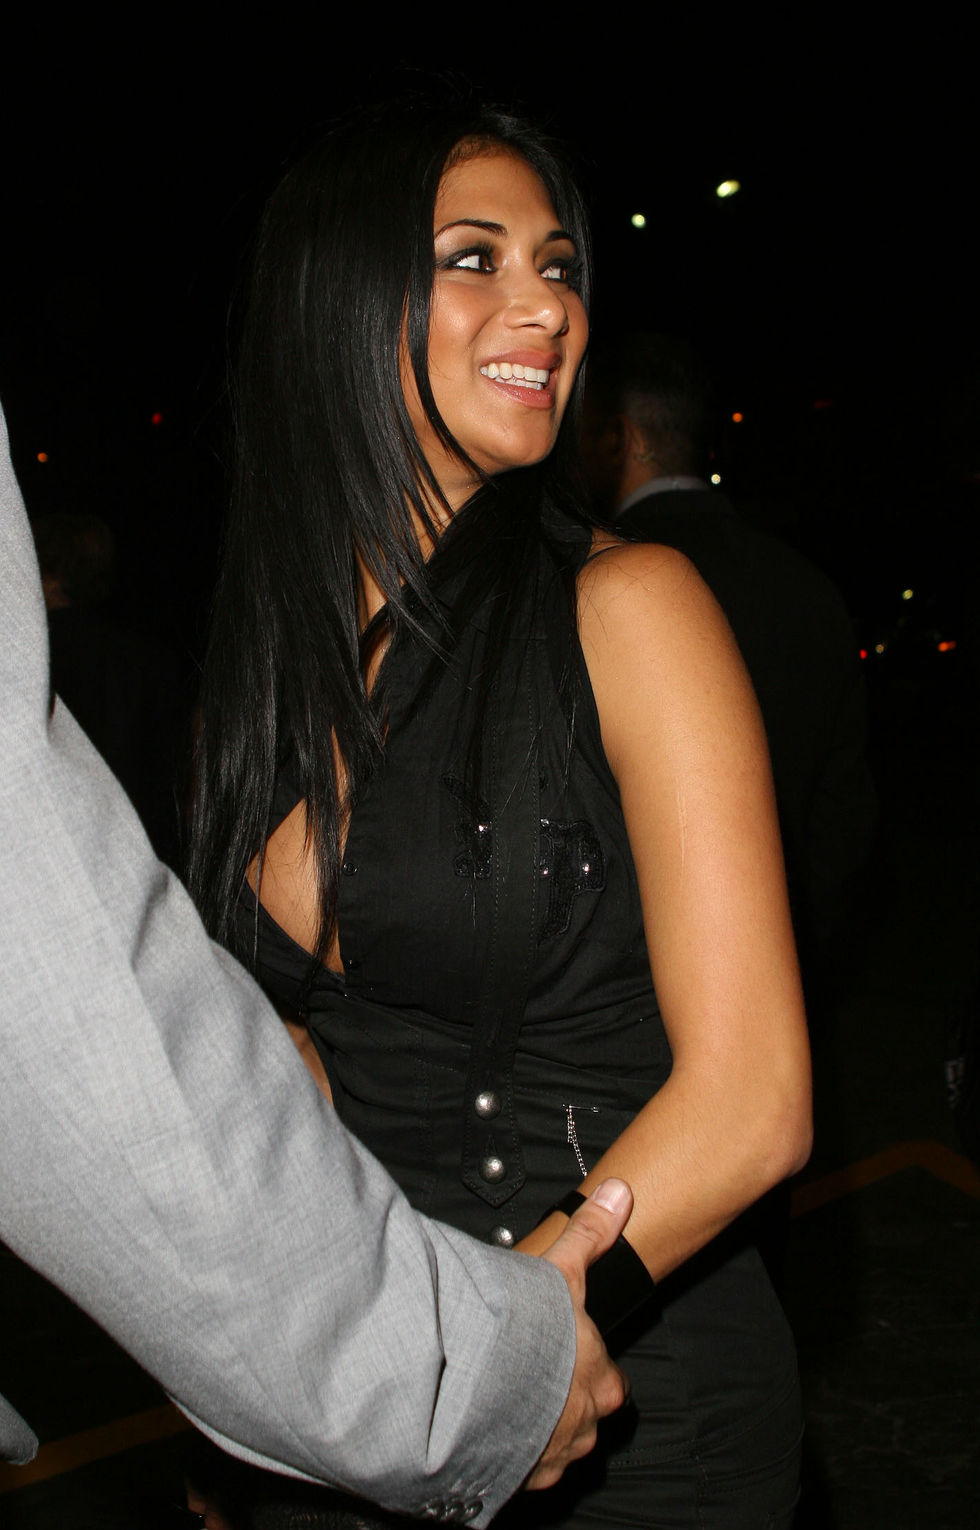 nicole-scherzinger-cleavage-candids-at-avalon-nightclub-in-hollywood-01